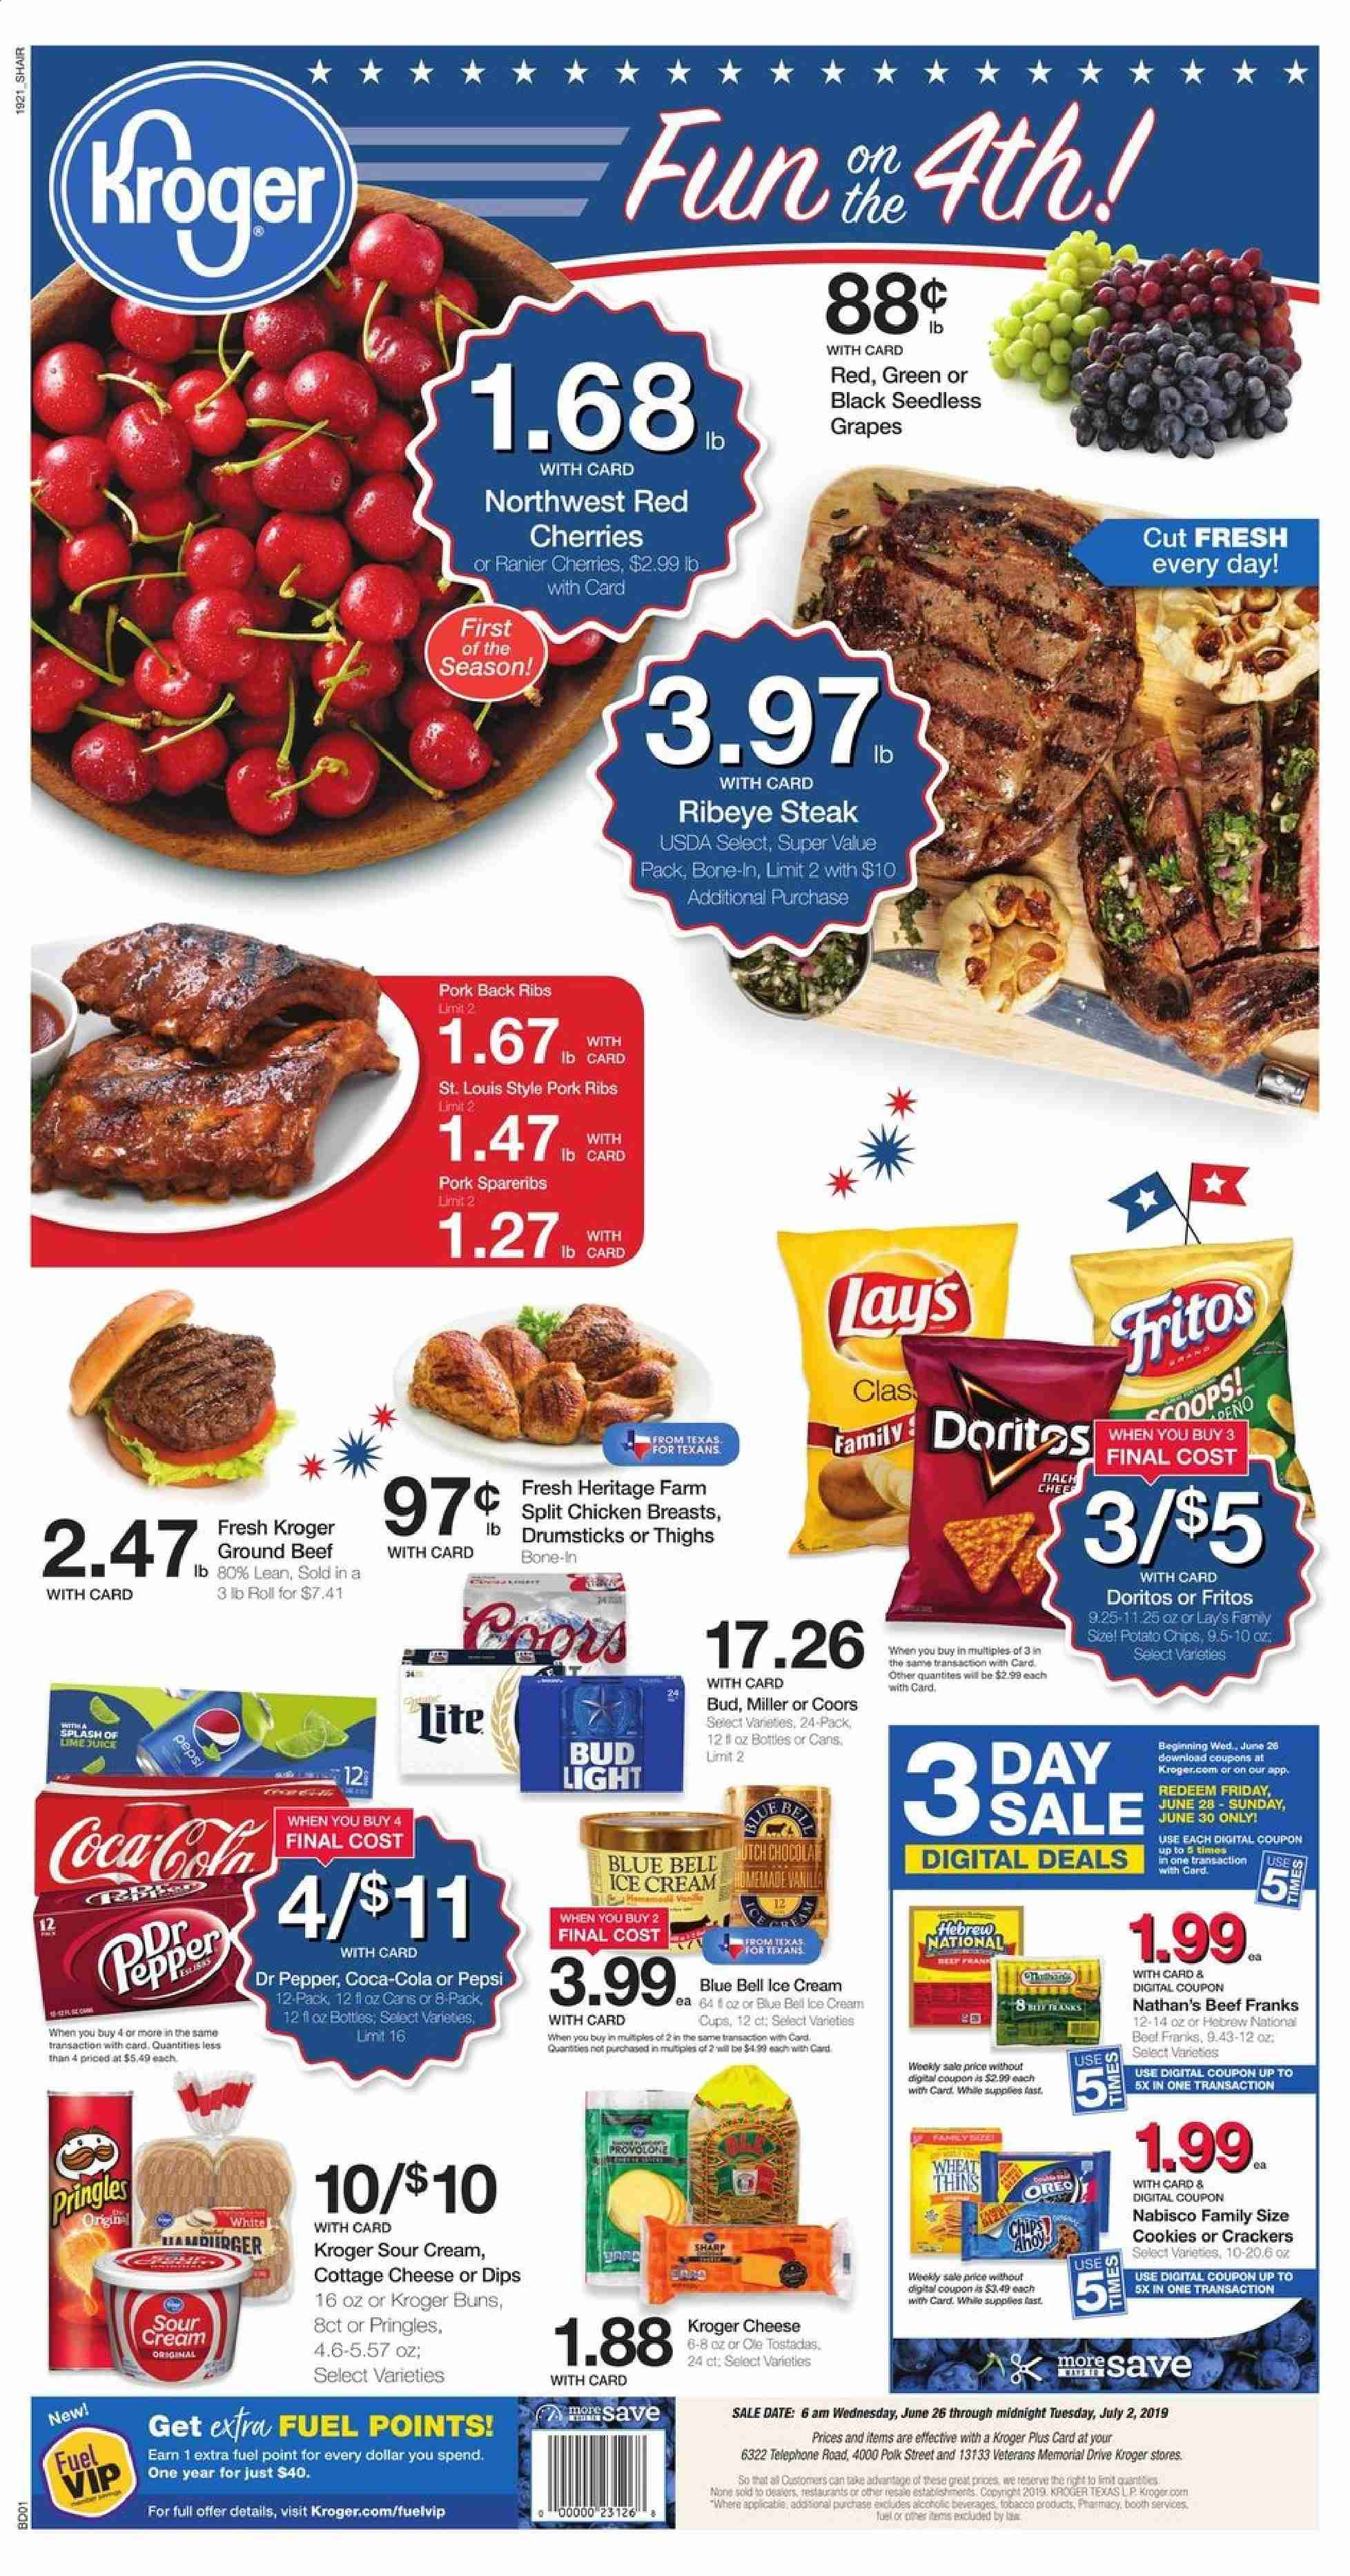 Kroger Flyer - 06.26.2019 - 07.02.2019 - Sales products - Bud Light, Coors, grapes, seedless grapes, cherries, cottage cheese, cheese, Oreo, sour cream, ice cream, cookies, cracker, crackers, Doritos, potato chips, Pringles, chips, Lay's, Fritos, pepper, Coca-Cola, Pepsi, Dr. Pepper, chicken, chicken breast, beef meat, steak, ground beef, pork meat, pork ribs, Sharp, fuel, ribs. Page 1.